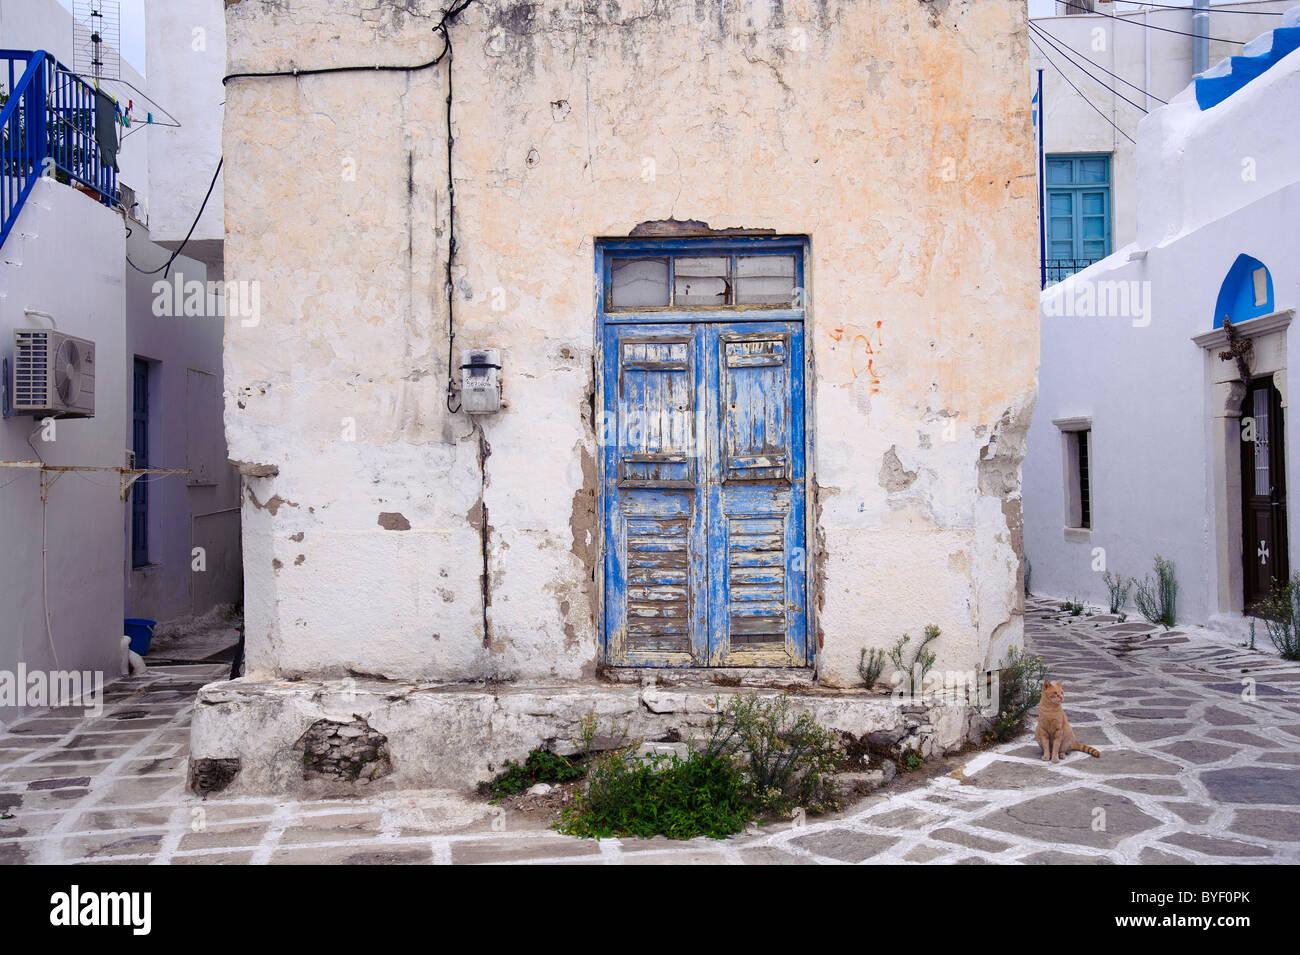 Ginger cat standing close to an old decrepit house in the town of Parikia, on the Greek Cyclade island of Paros. - Stock Image